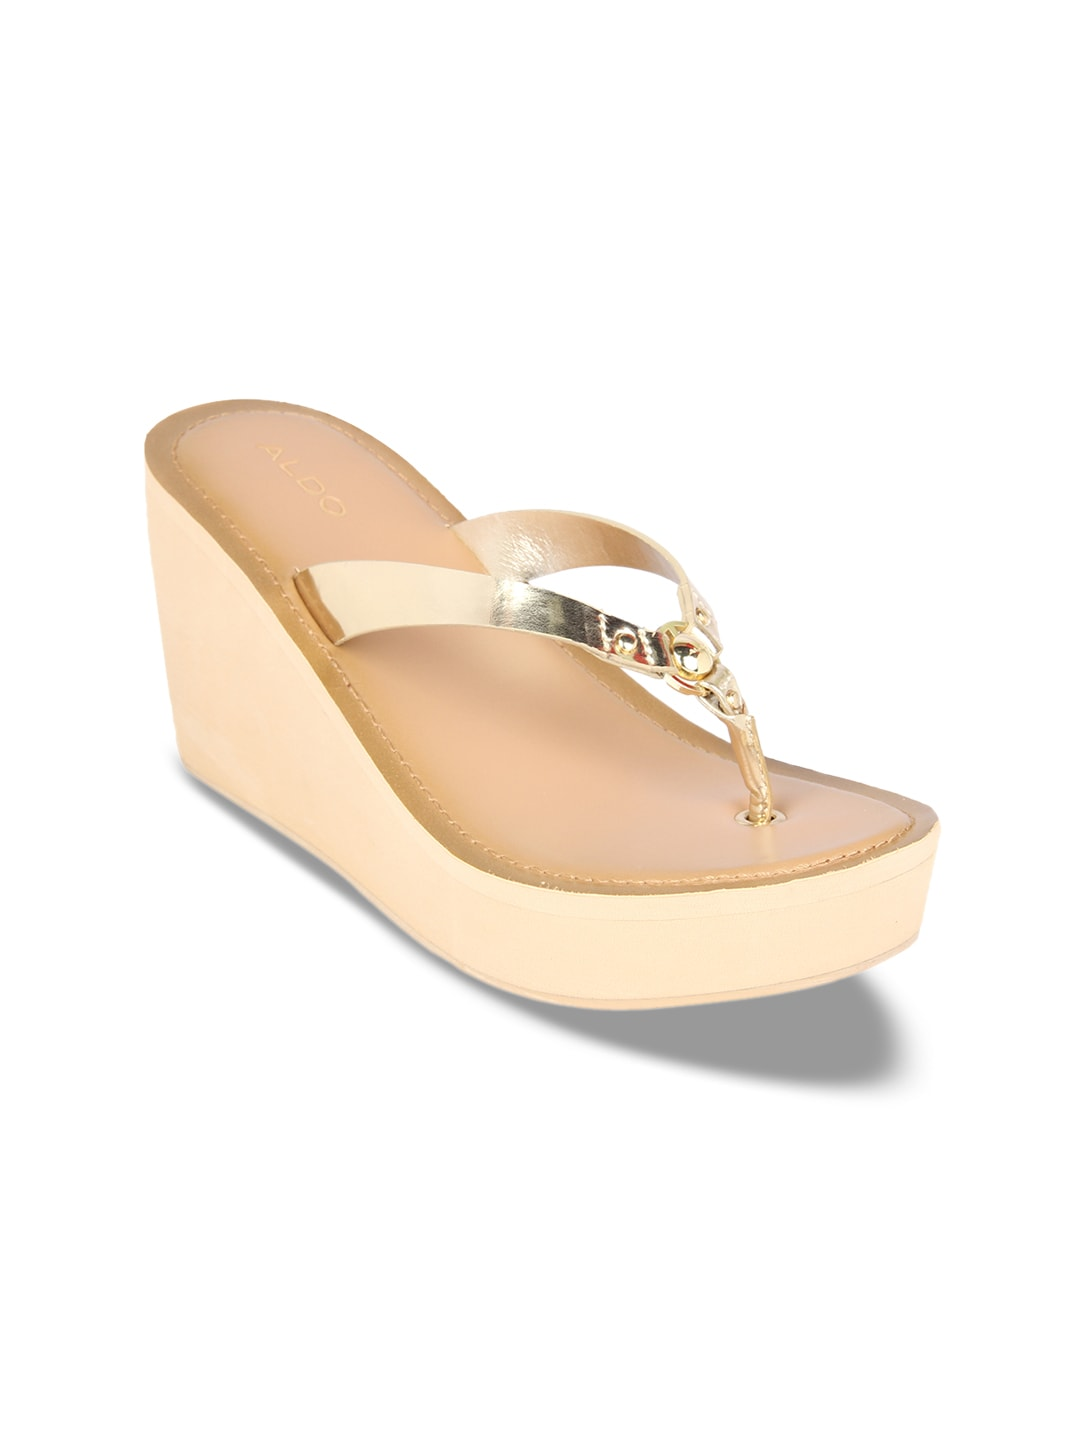 60bb6824329 Aldo Thirenna Golden Sandals for women - Get stylish shoes for Every ...